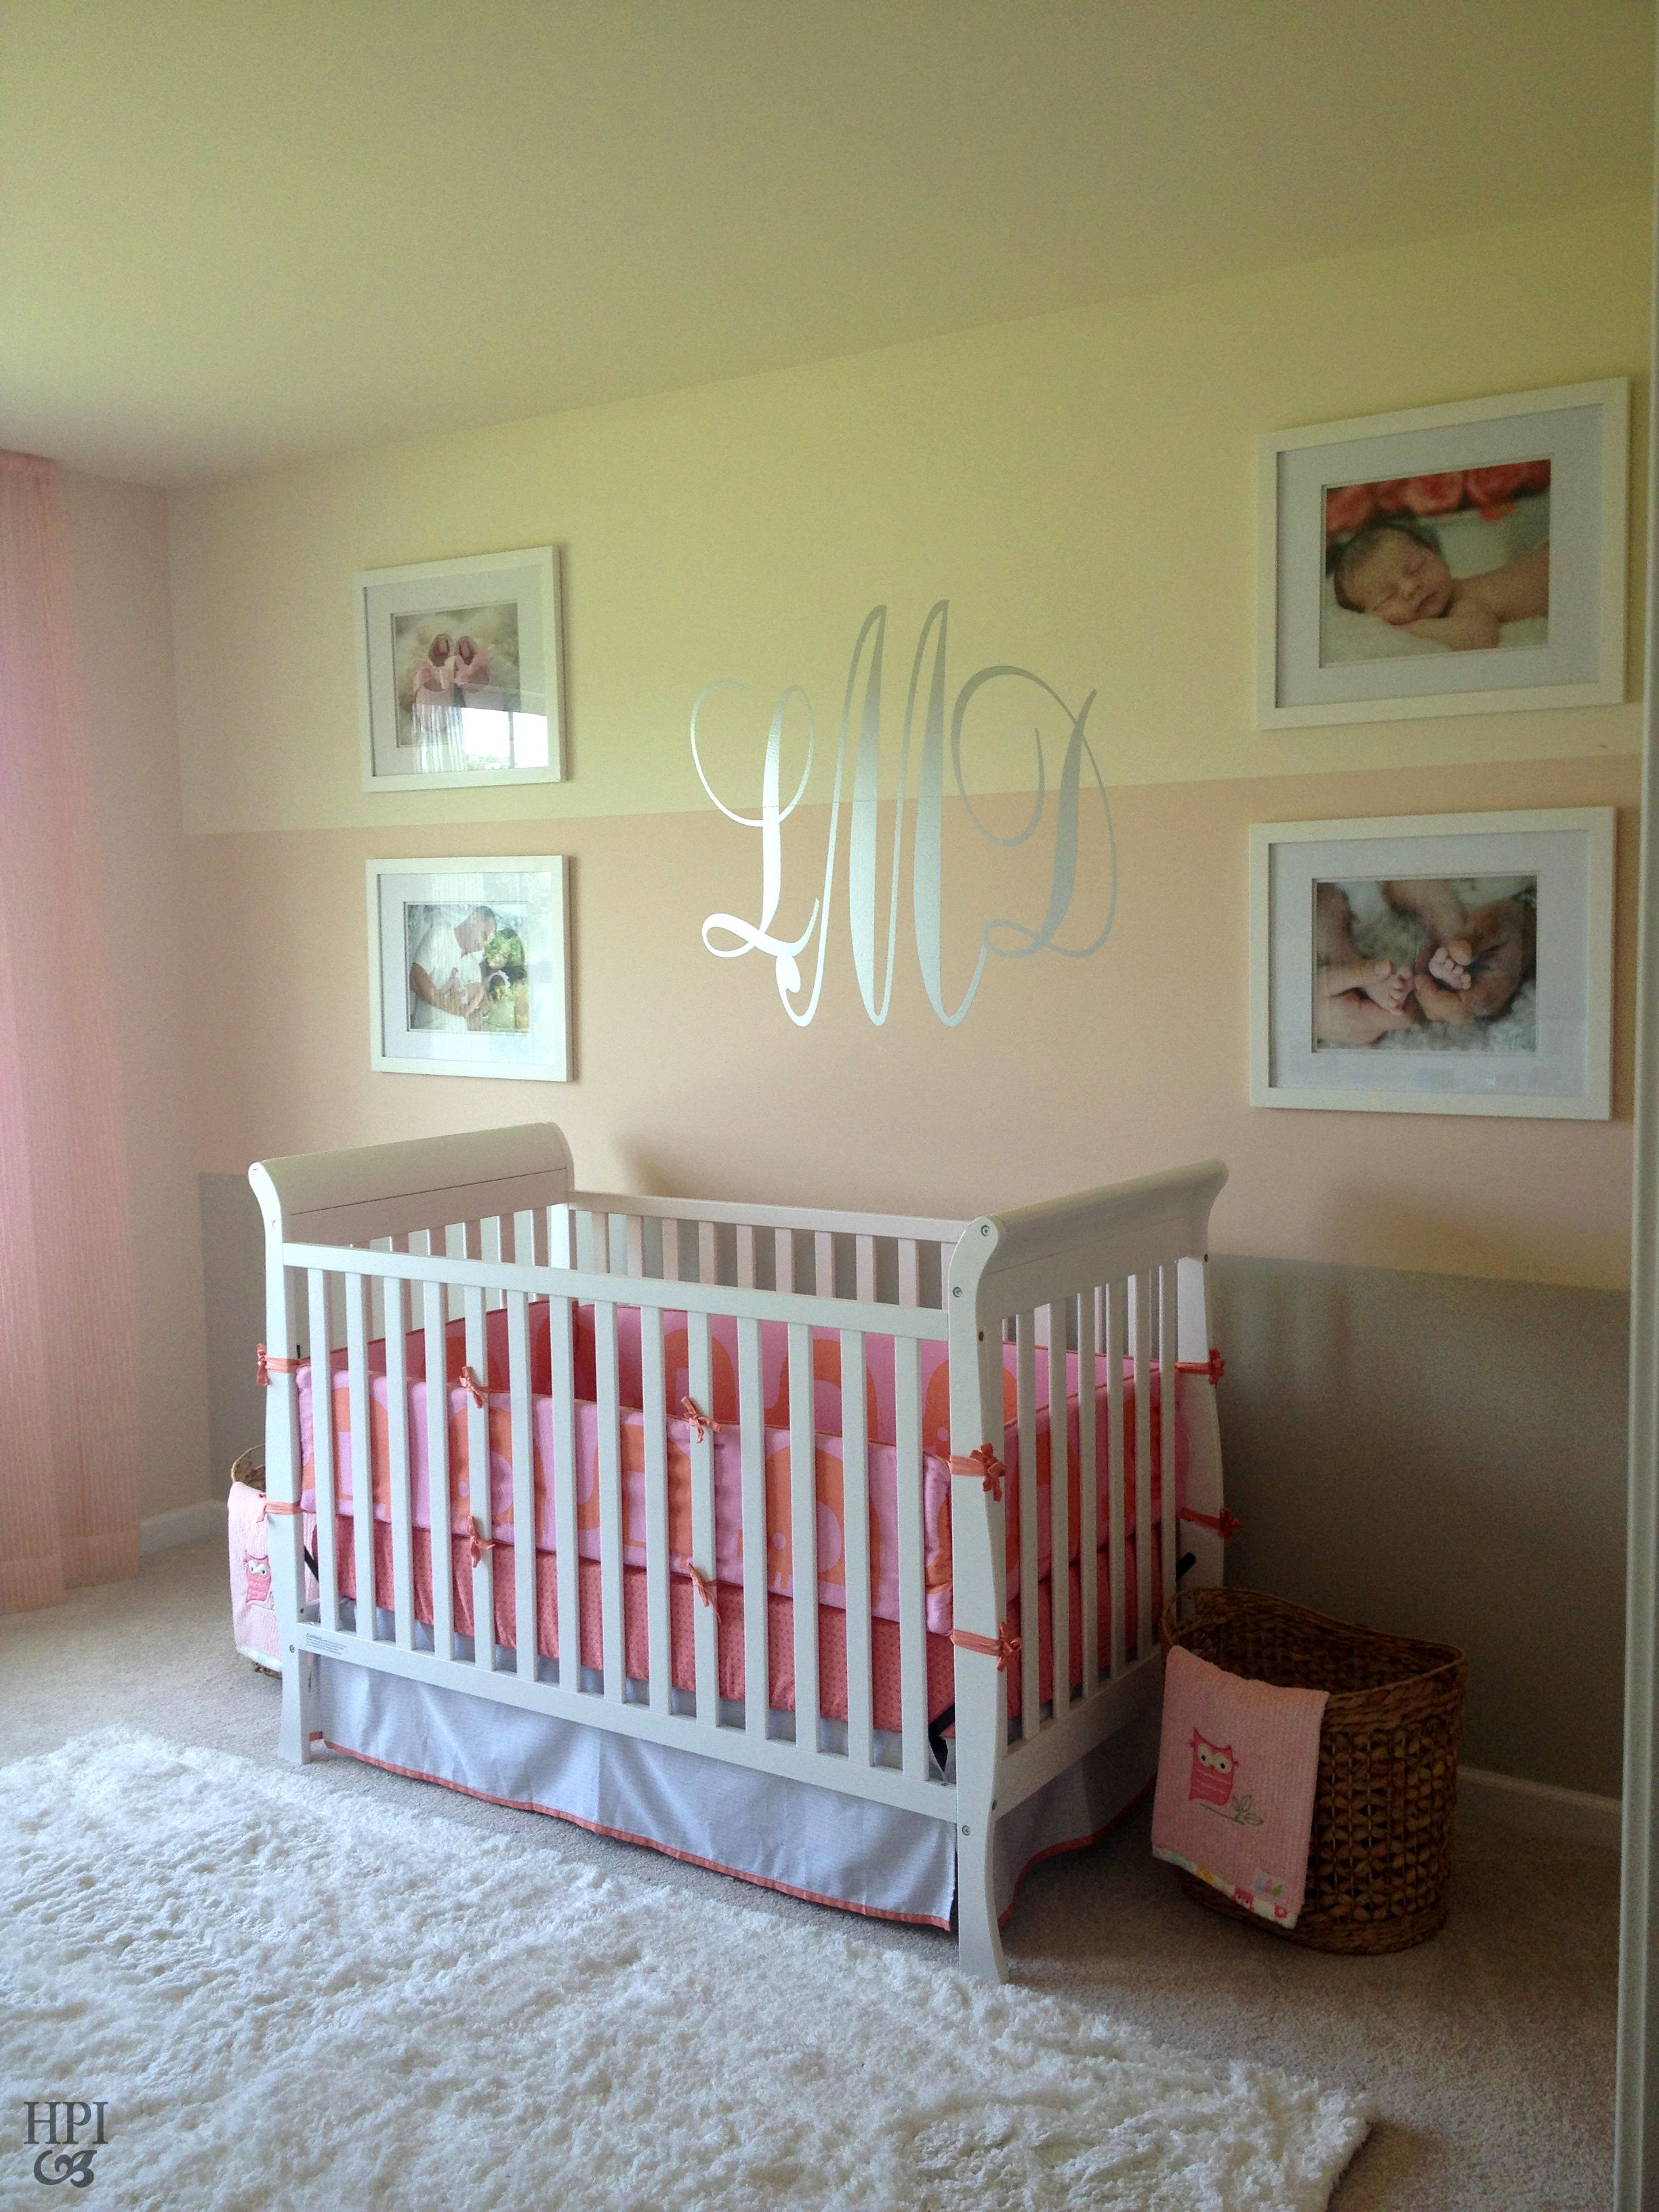 Monogram Decorations For Bedroom Helen Piteo Interiors Themed Room Baby Room Pink And Yellow